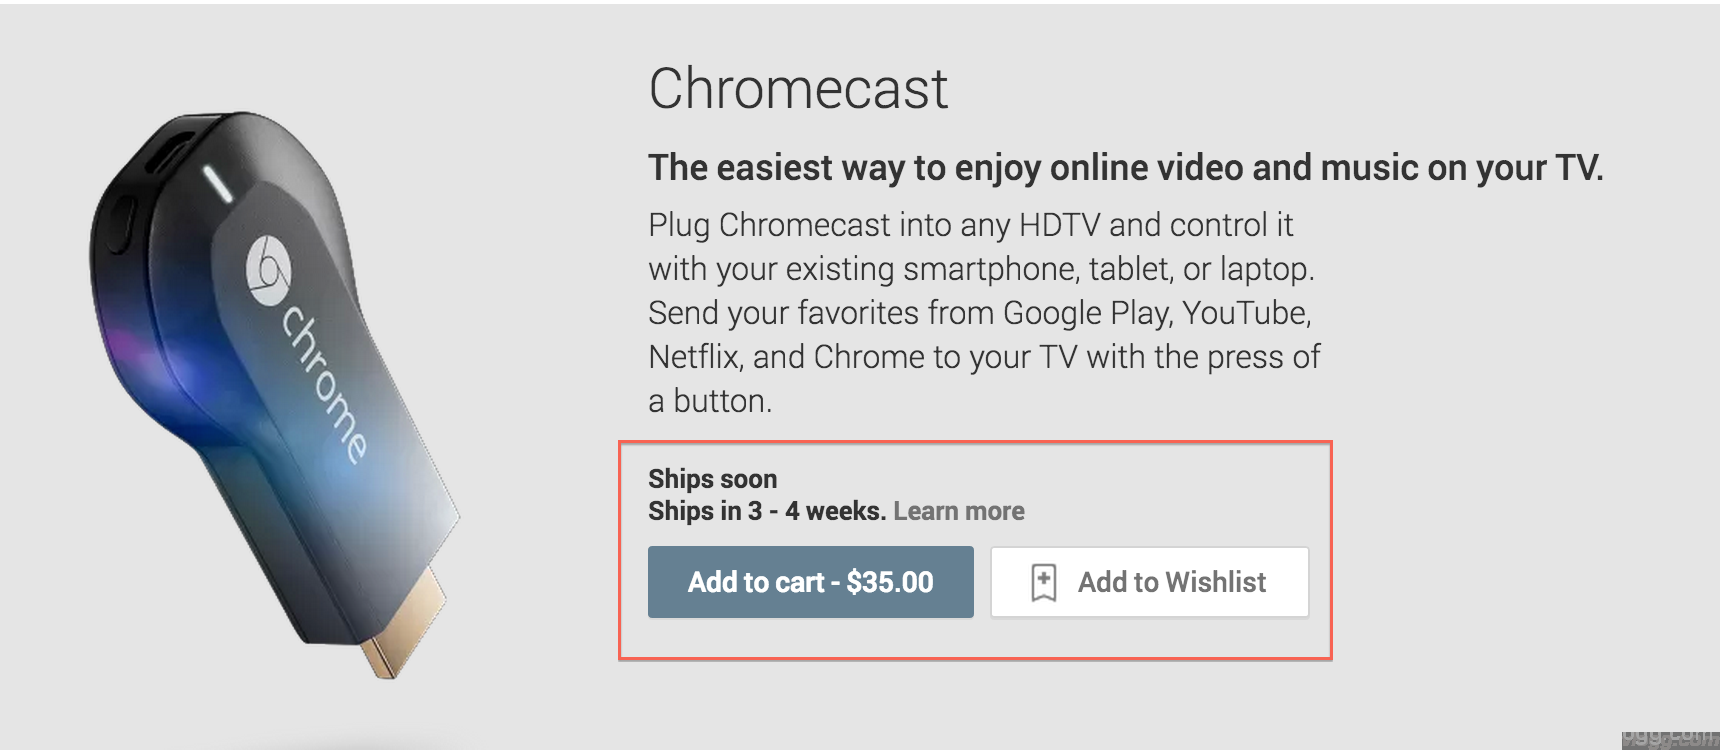 Google Chromecast now available in playstore!